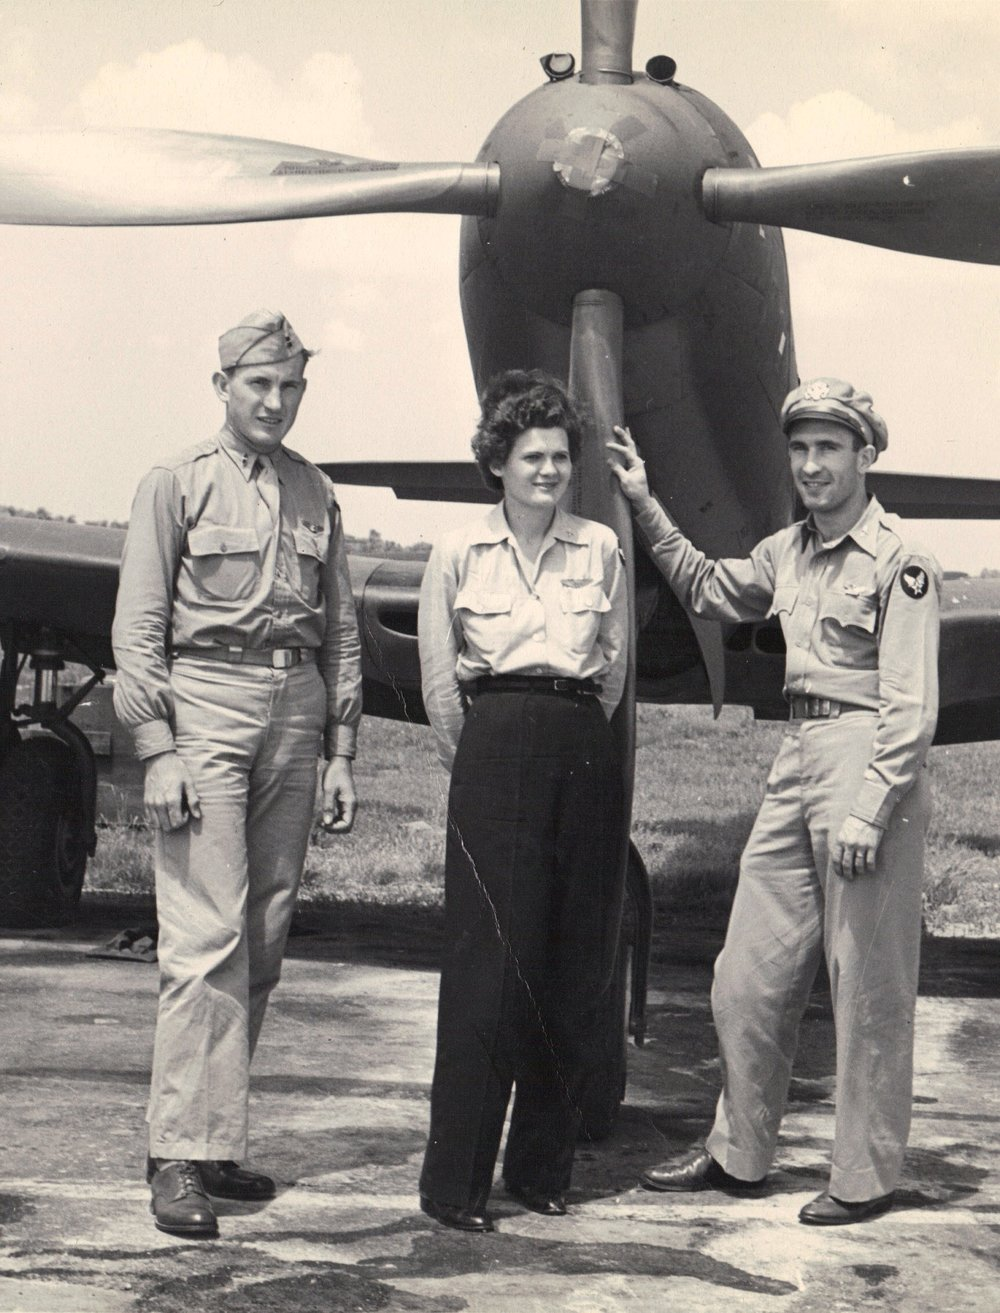 Helm with unidentified pilots preparing to ferry a P-63 headed to Russia. (Photo: Jay Helm, via Arizona Public Media)